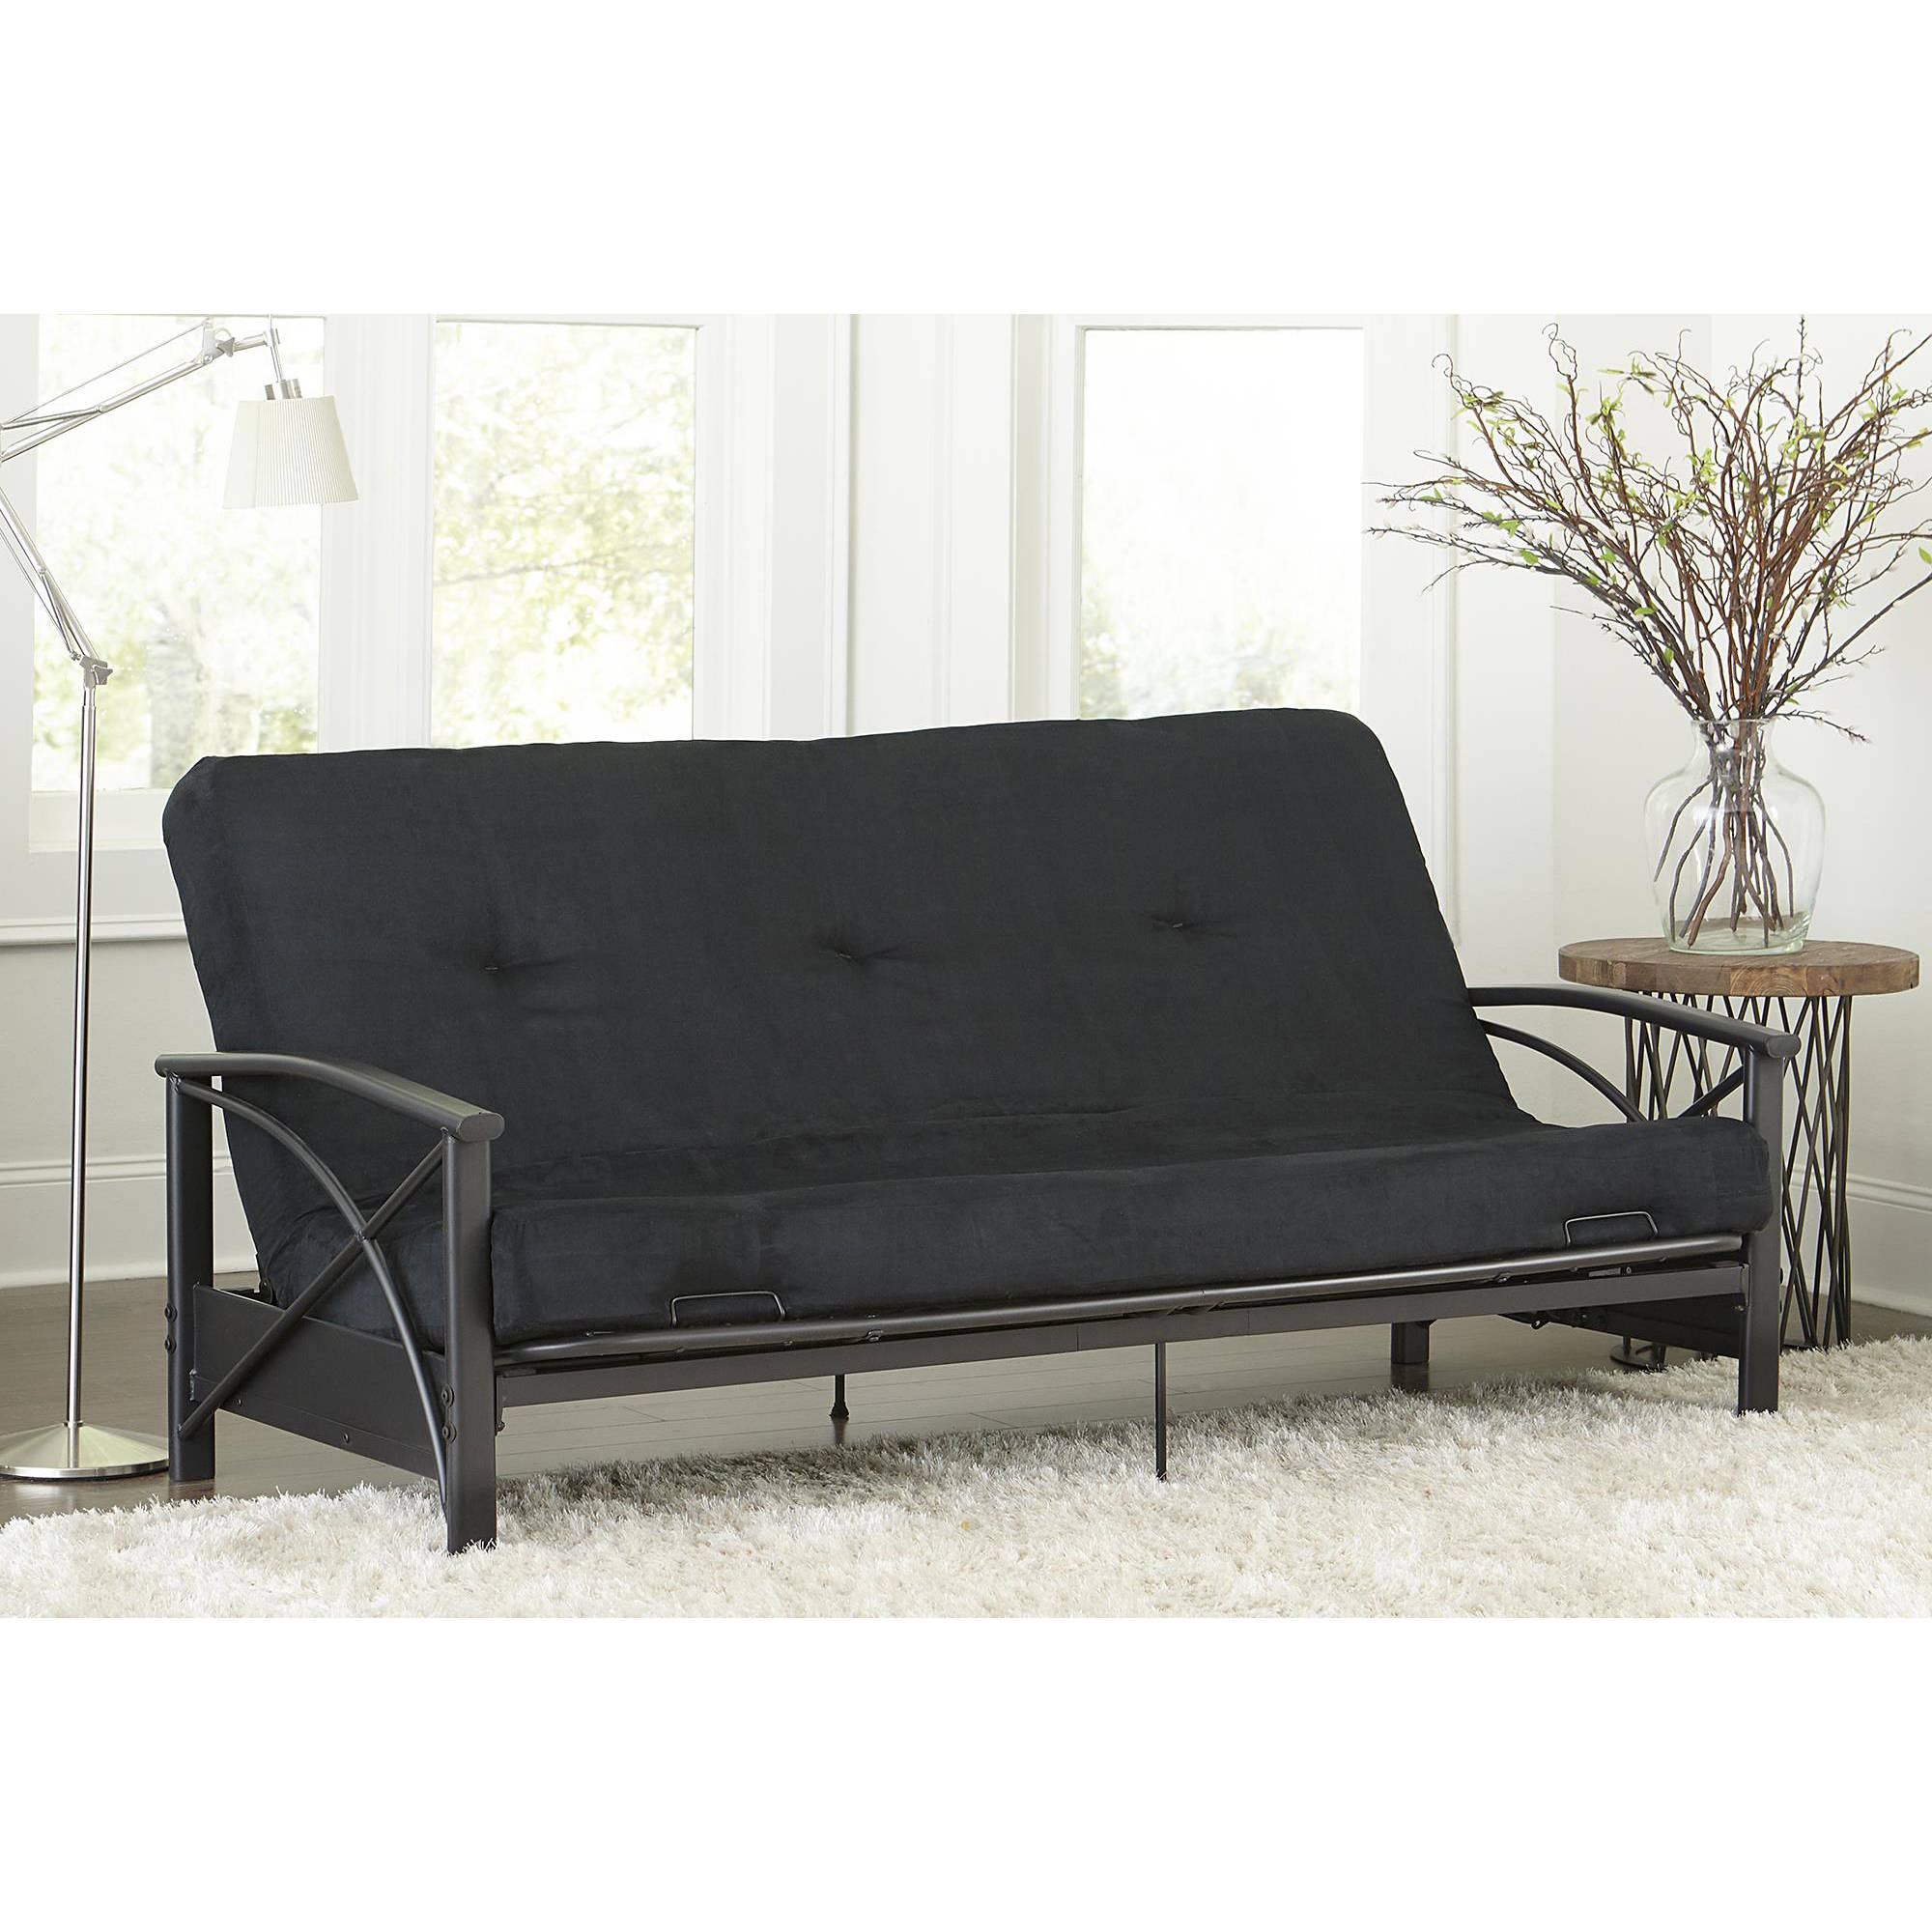 Mainstays Monaco Black Metal Futon